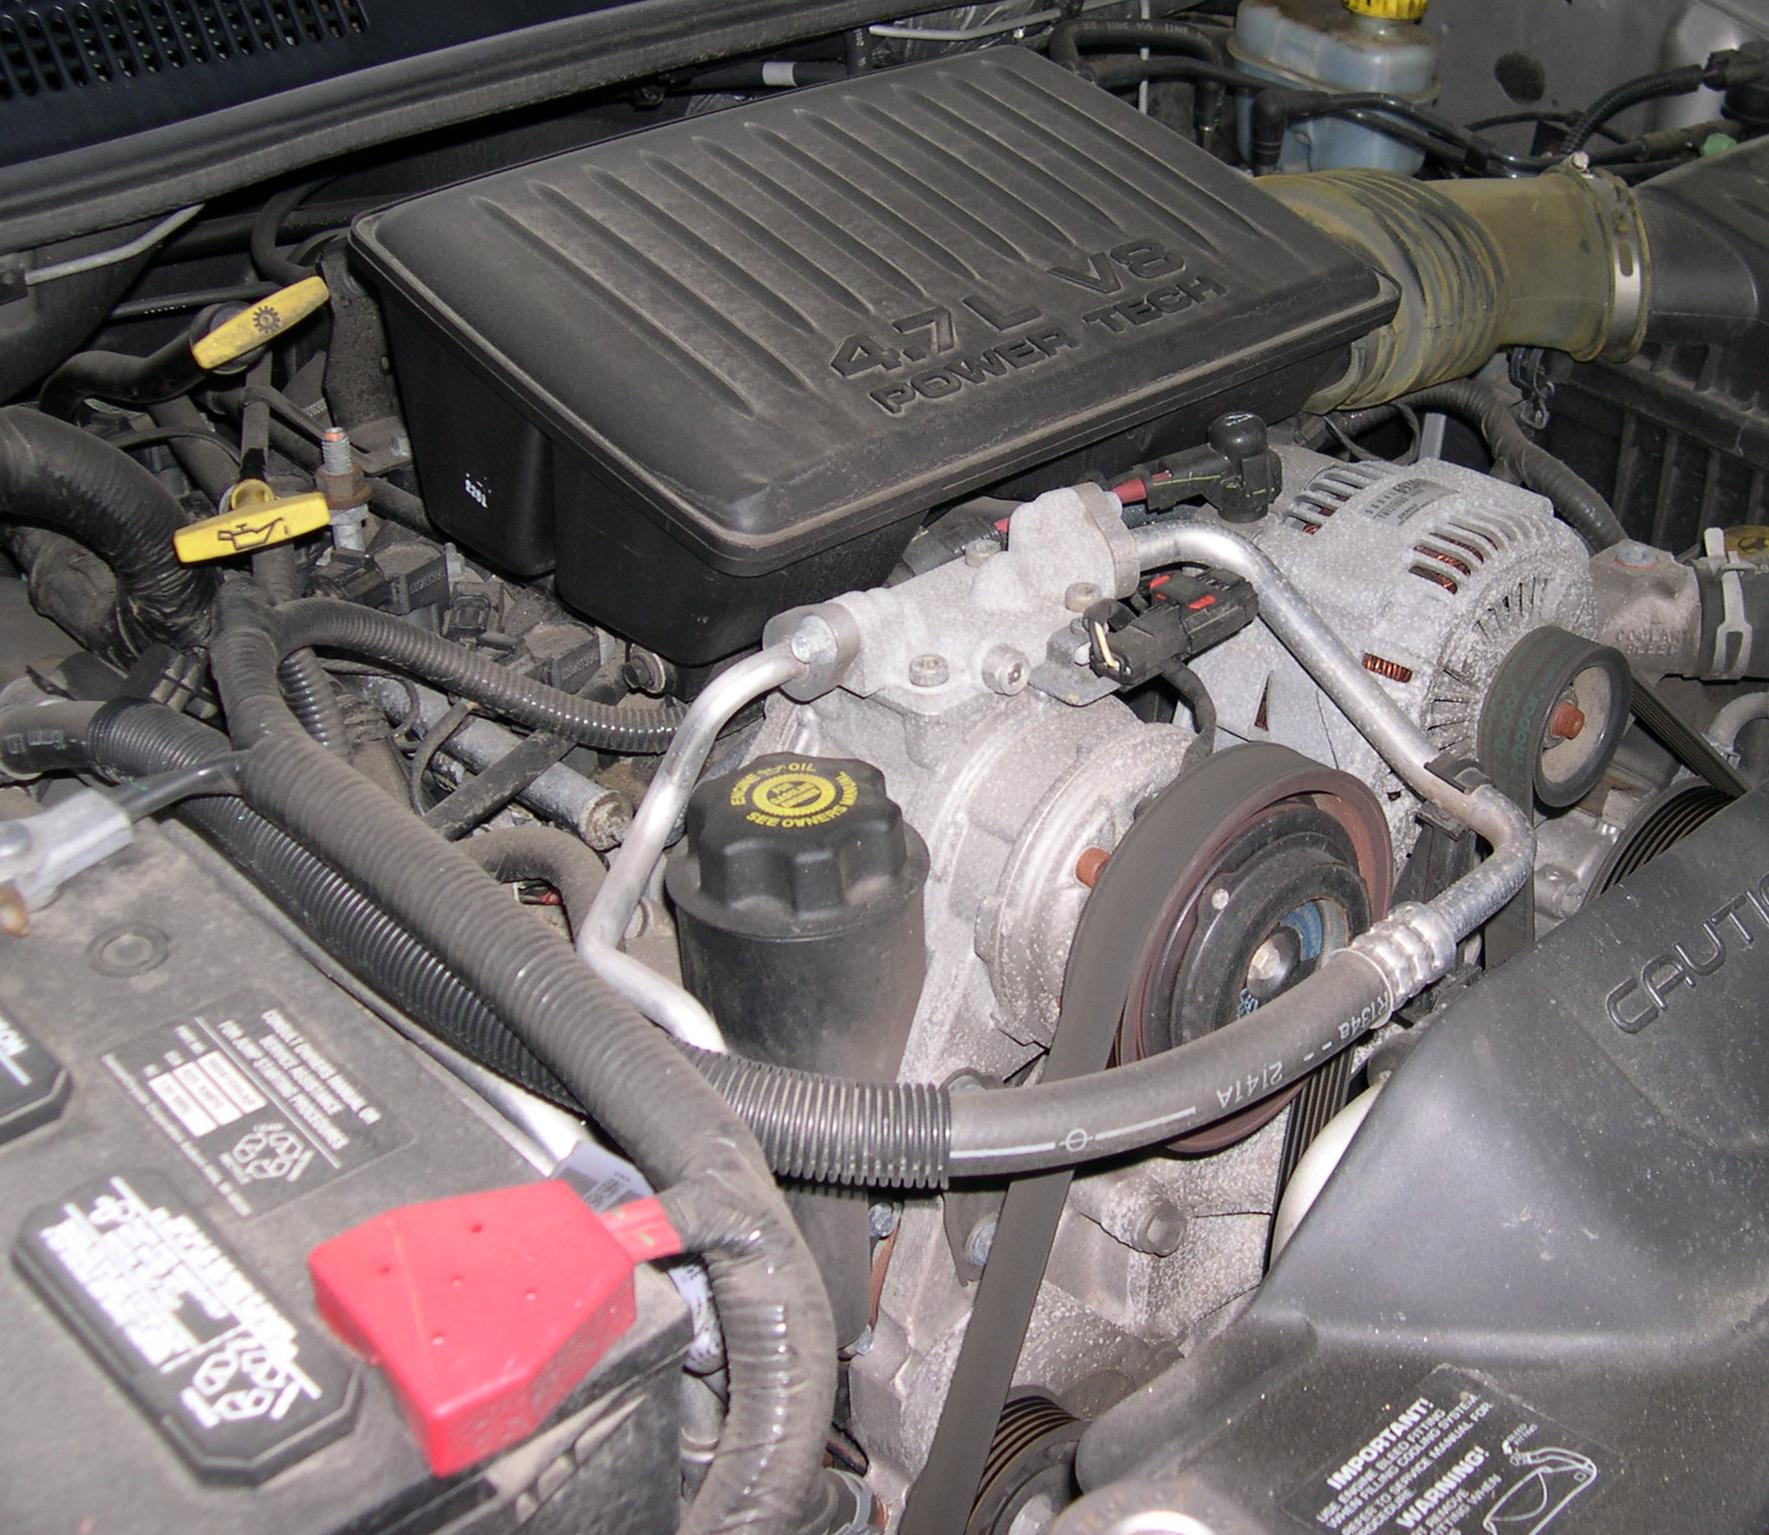 File jeep grand cherokee wj 47 power tech v8 jpg wikimedia commons